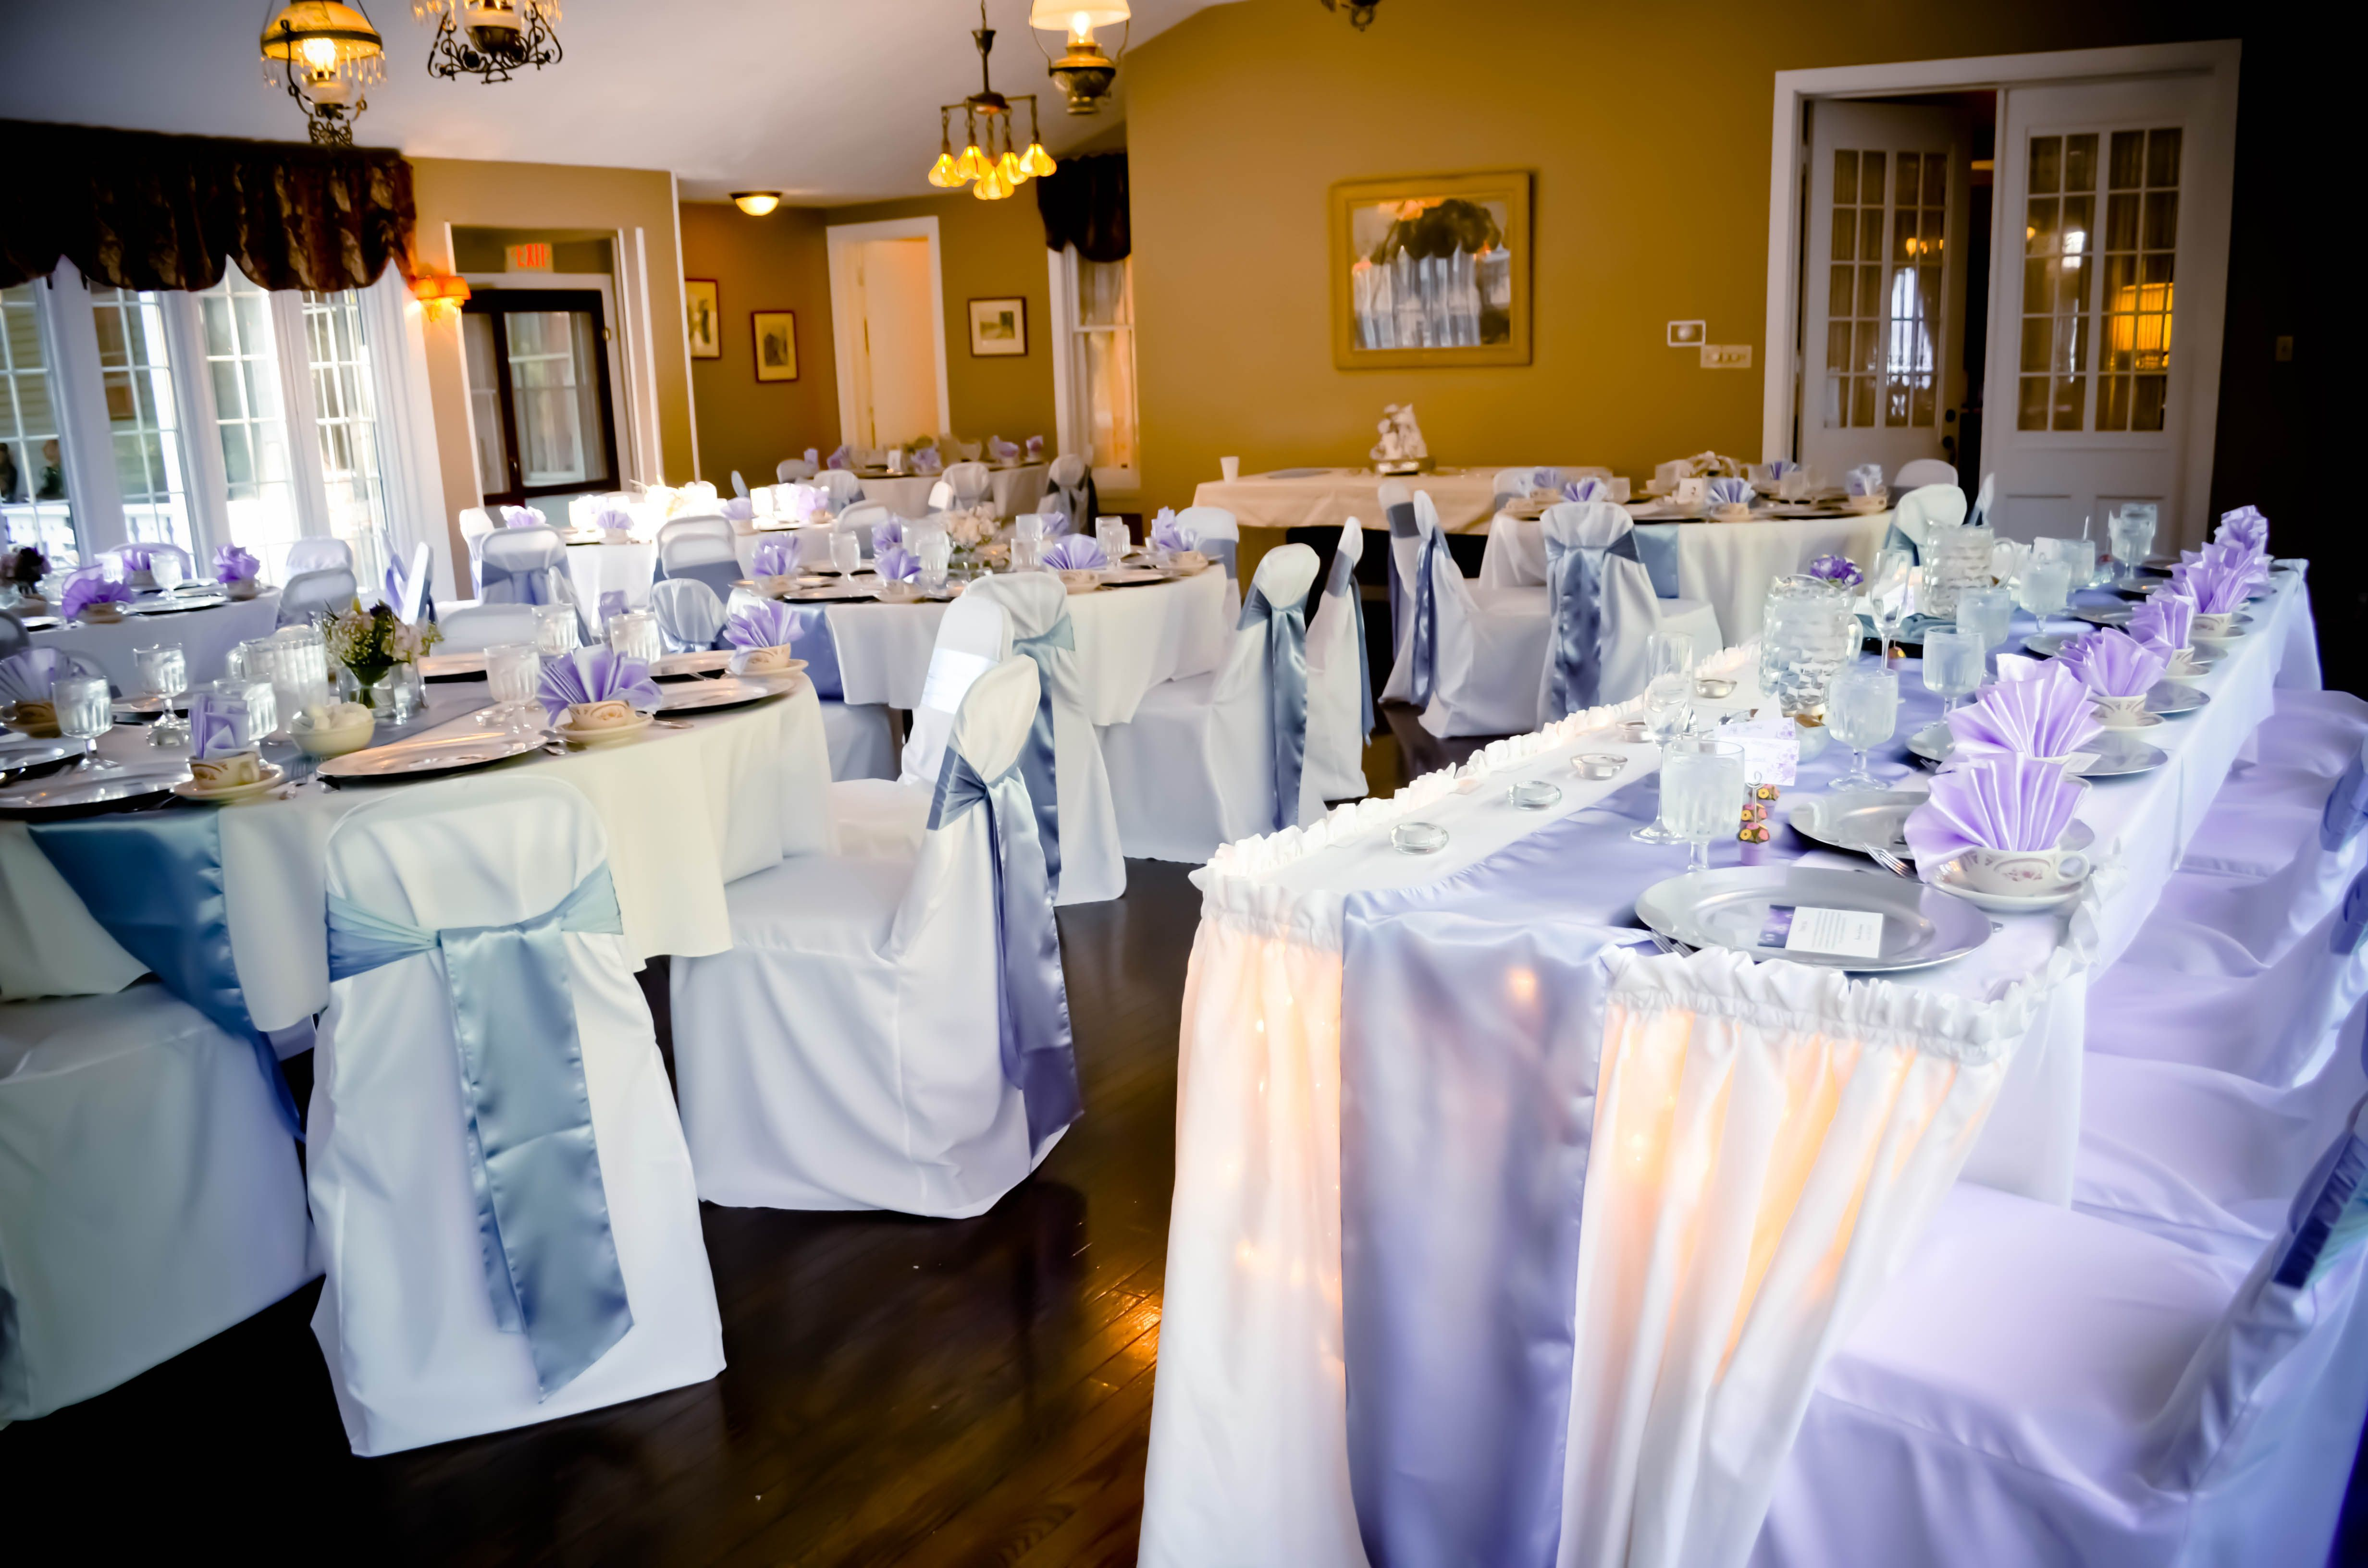 Banquet Hall Chair Covers Electric Bath Chairs Elderly White Periwinkle Satin Sashes